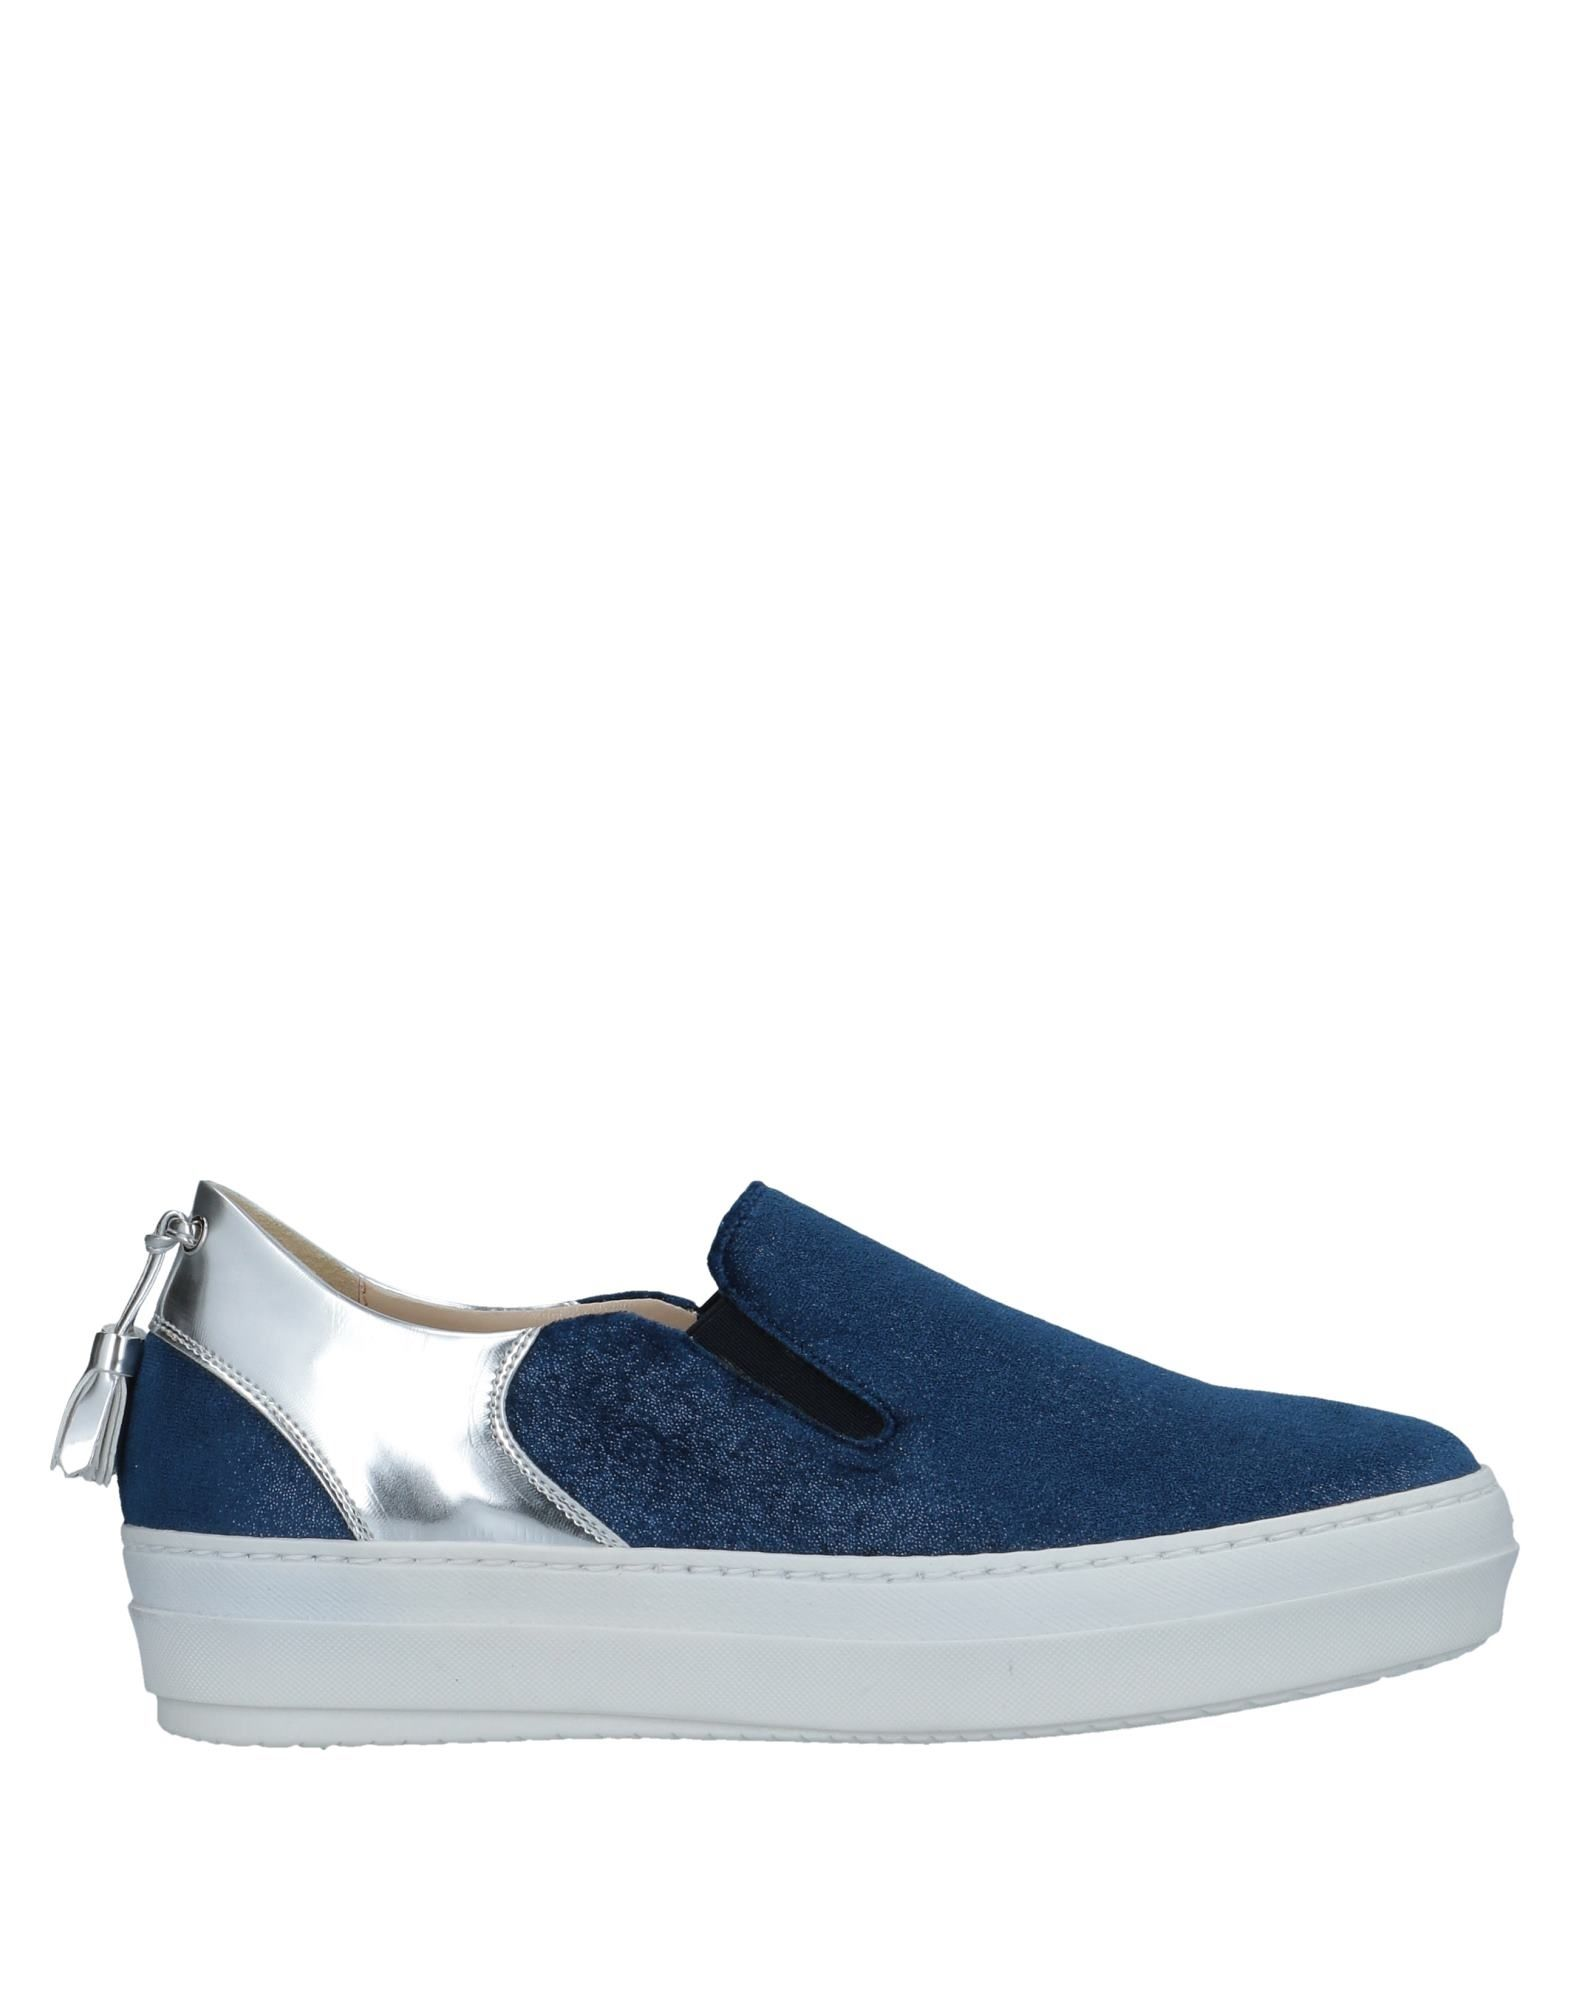 Sneakers 11526851QS Atos Lombardini Donna - 11526851QS Sneakers b20015